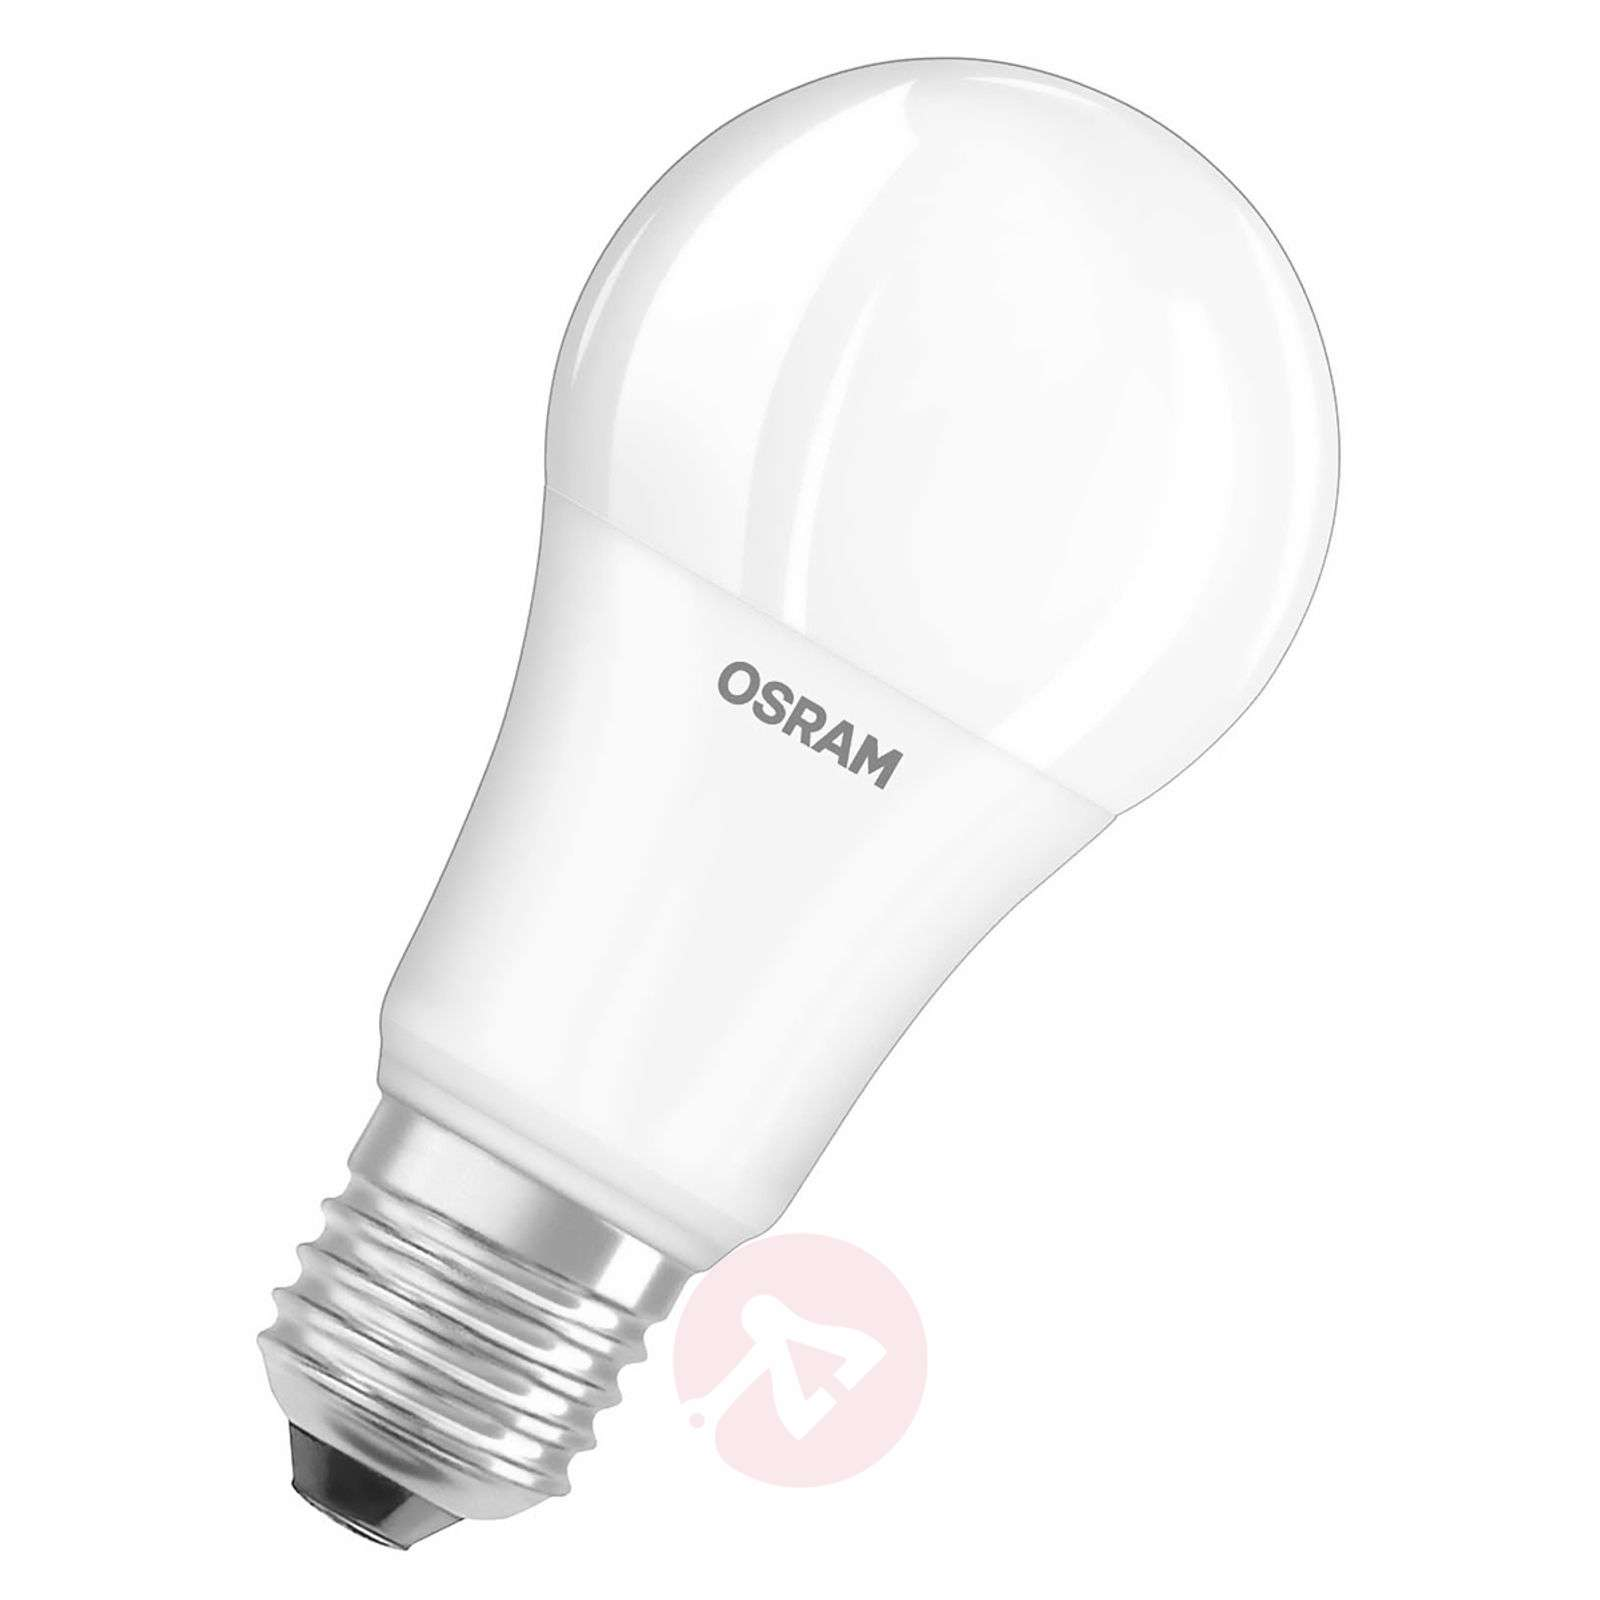 Osram lamps: types, characteristics, purpose and reviews 57